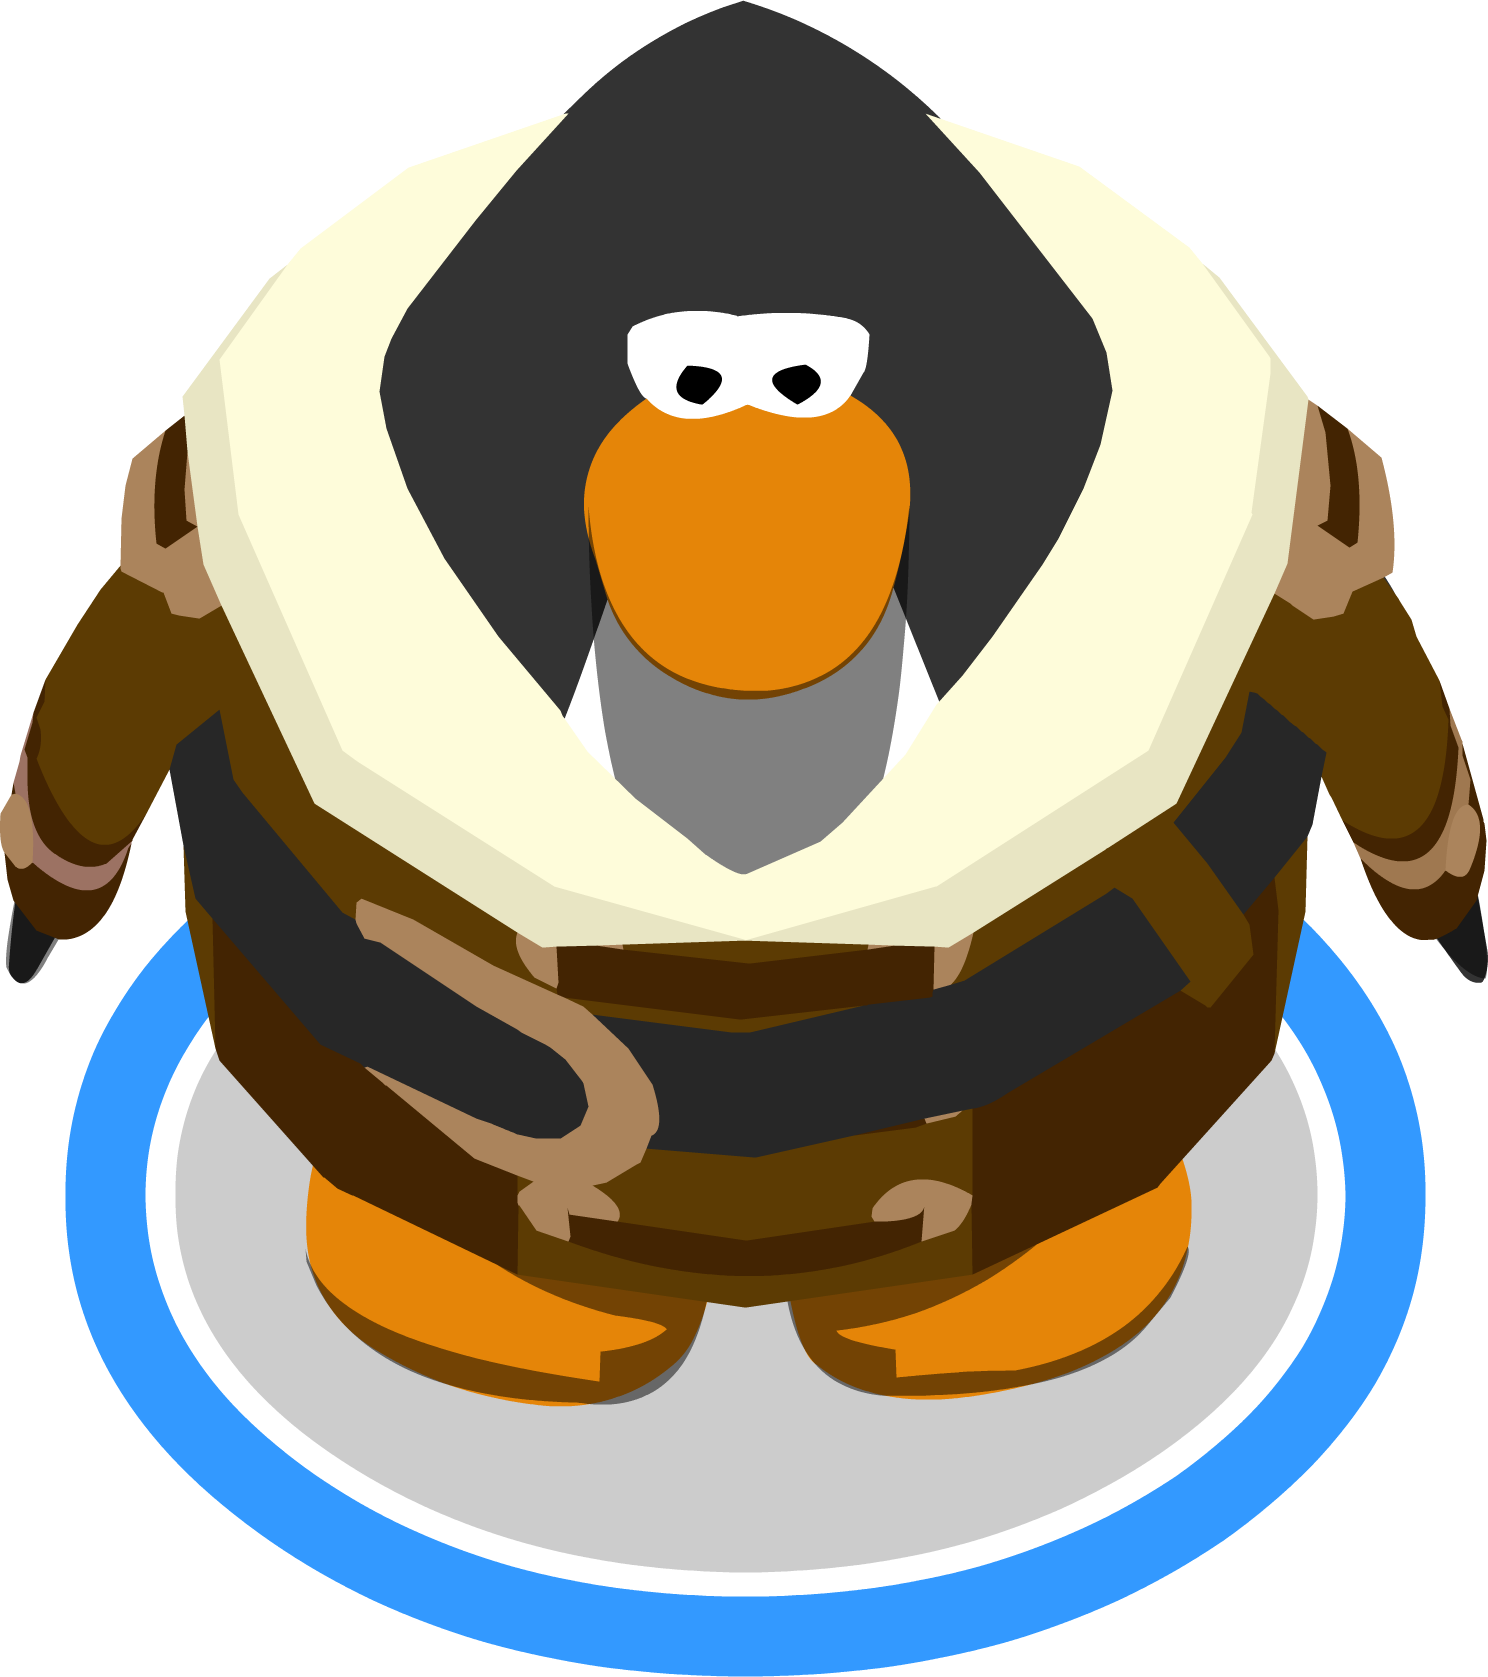 Captain clipart penguin. Image s greatcoat in